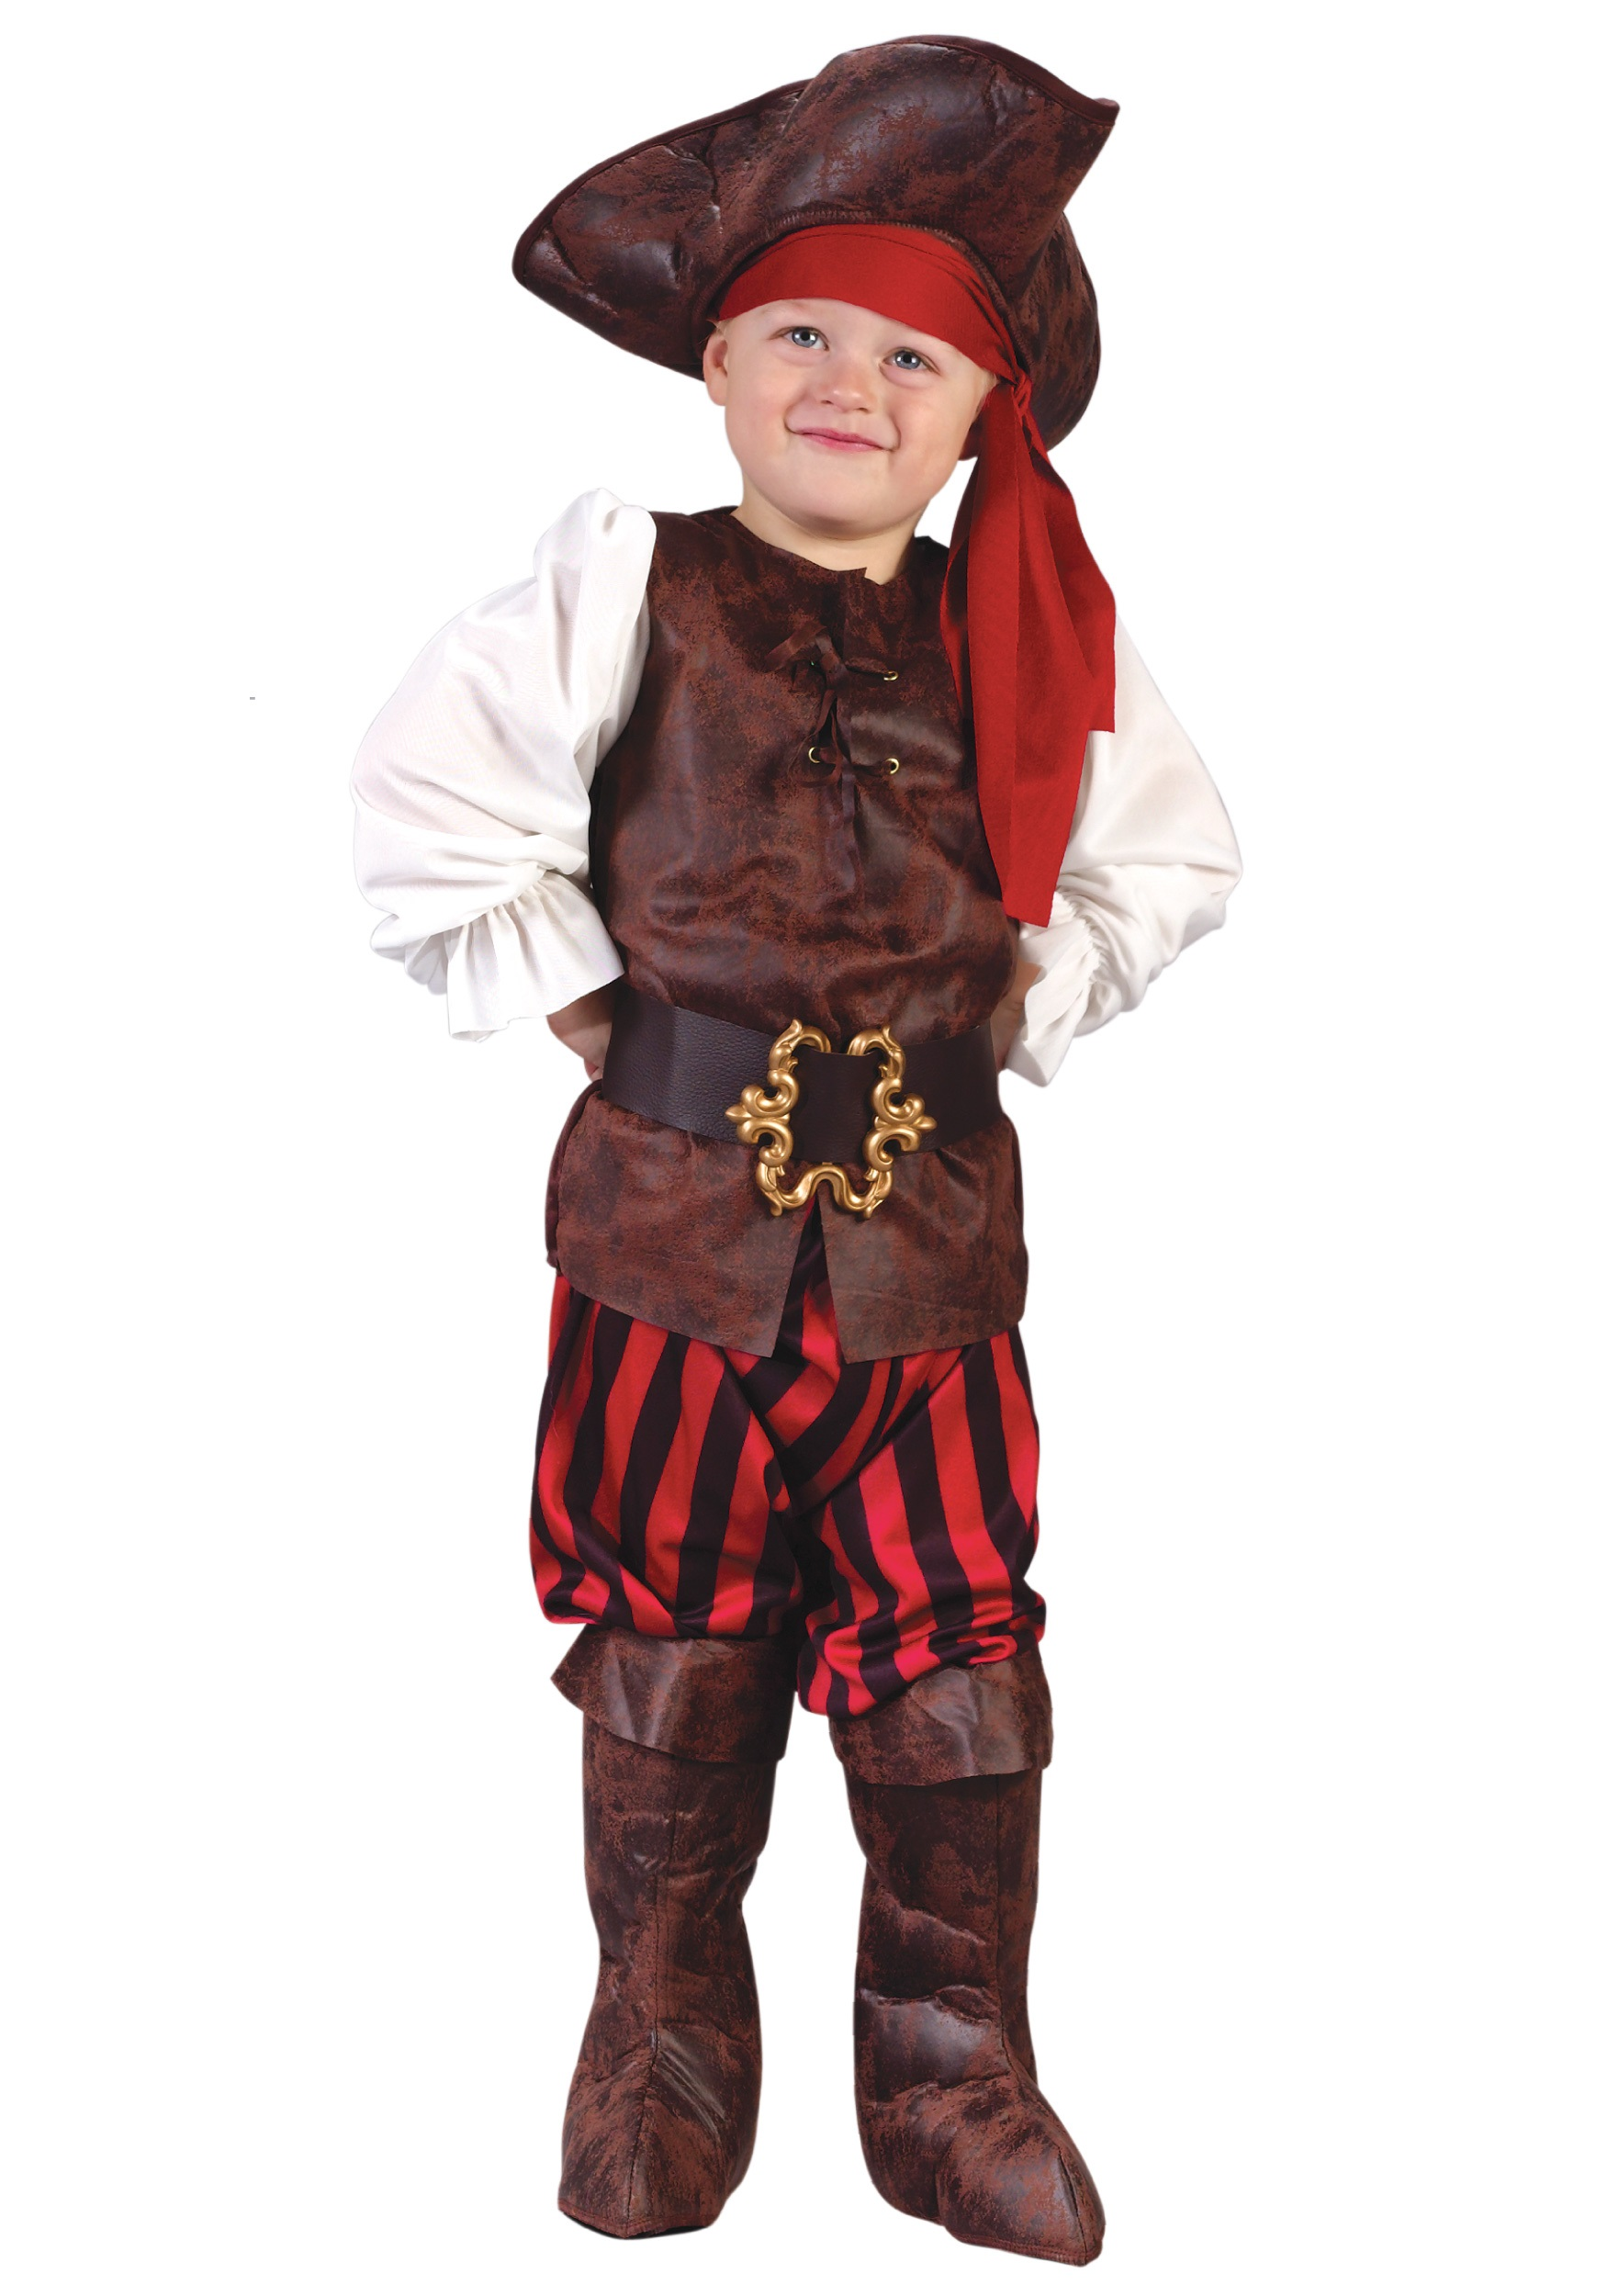 Seven Seas Toddler Pirate Costume  sc 1 st  Halloween Costume & Seven Seas Toddler Pirate Costume - Kids Pirate Halloween Costumes